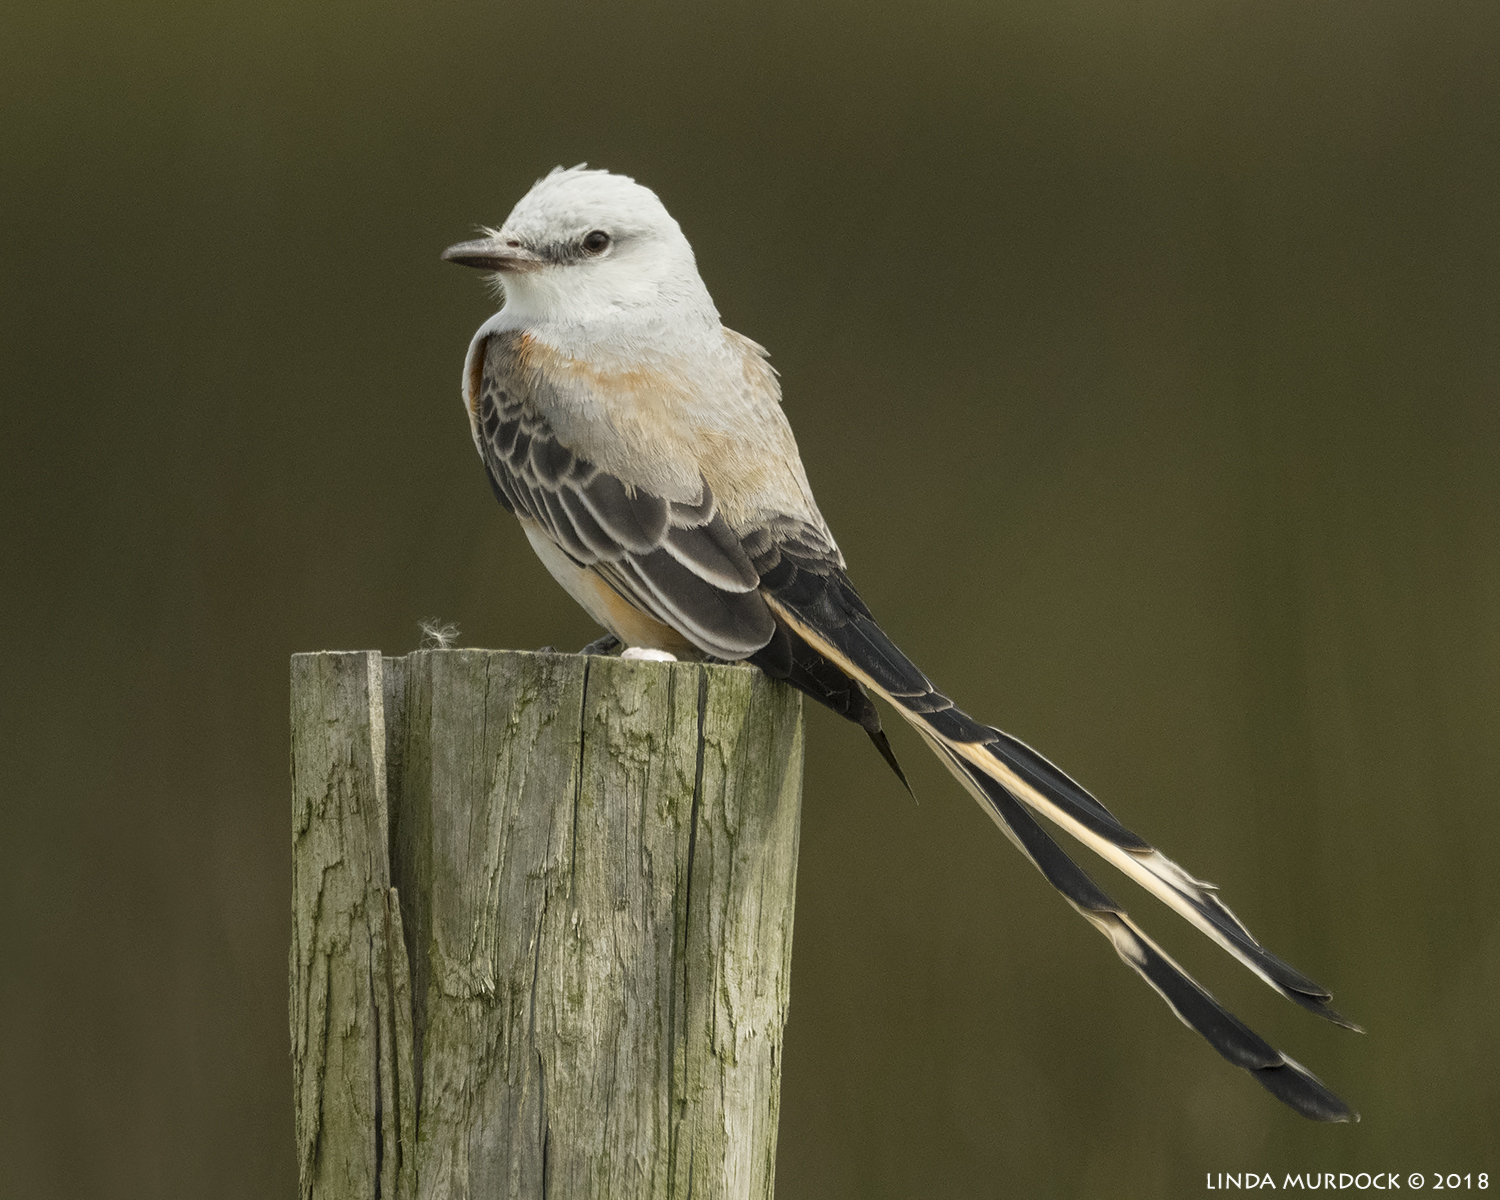 Scissor-tailed Flycatcher  Nikon D850 with NIKKOR 500mm f/4E VR with 1.4x TC ~ 1/2000 sec f/9.0 ISO 1000; braced on truck